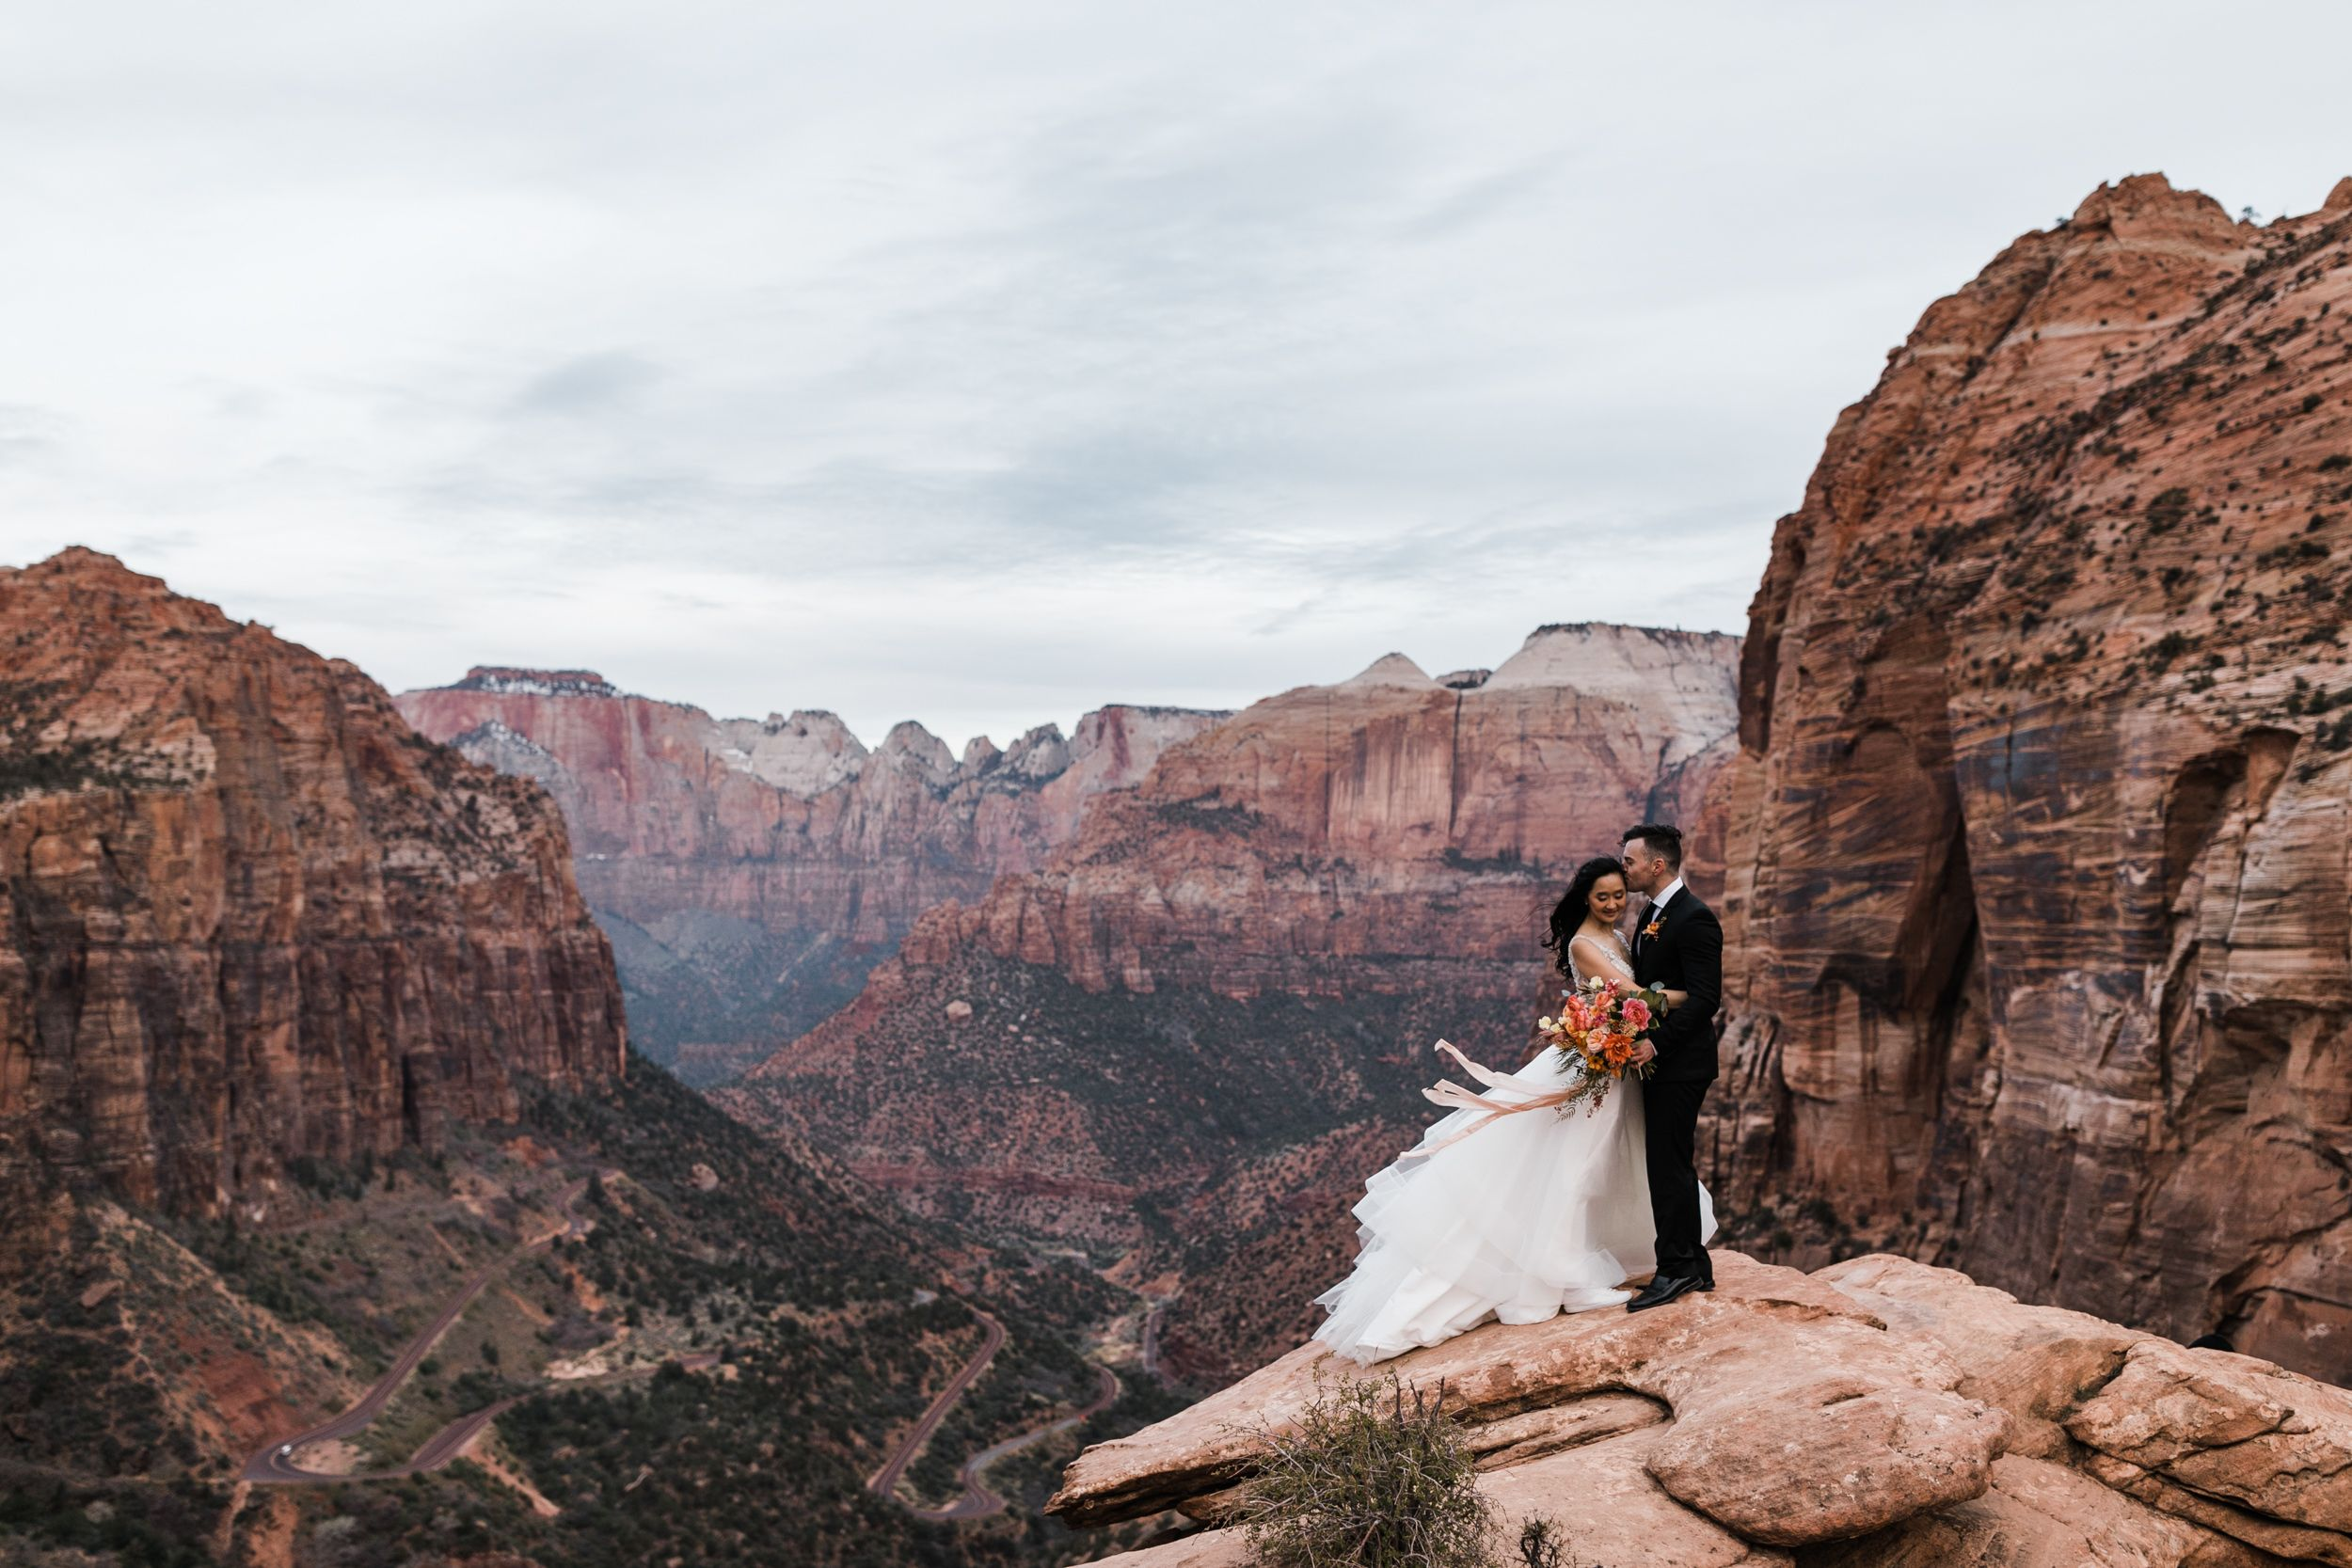 Zion National Park Elopement Utah Adventure Wedding Inspiration Adventure Wedding Elopement Photographers In Moab Yosemite And Beyond The Hearnes Adventure Wedding Adventure Wedding Photographer National Parks